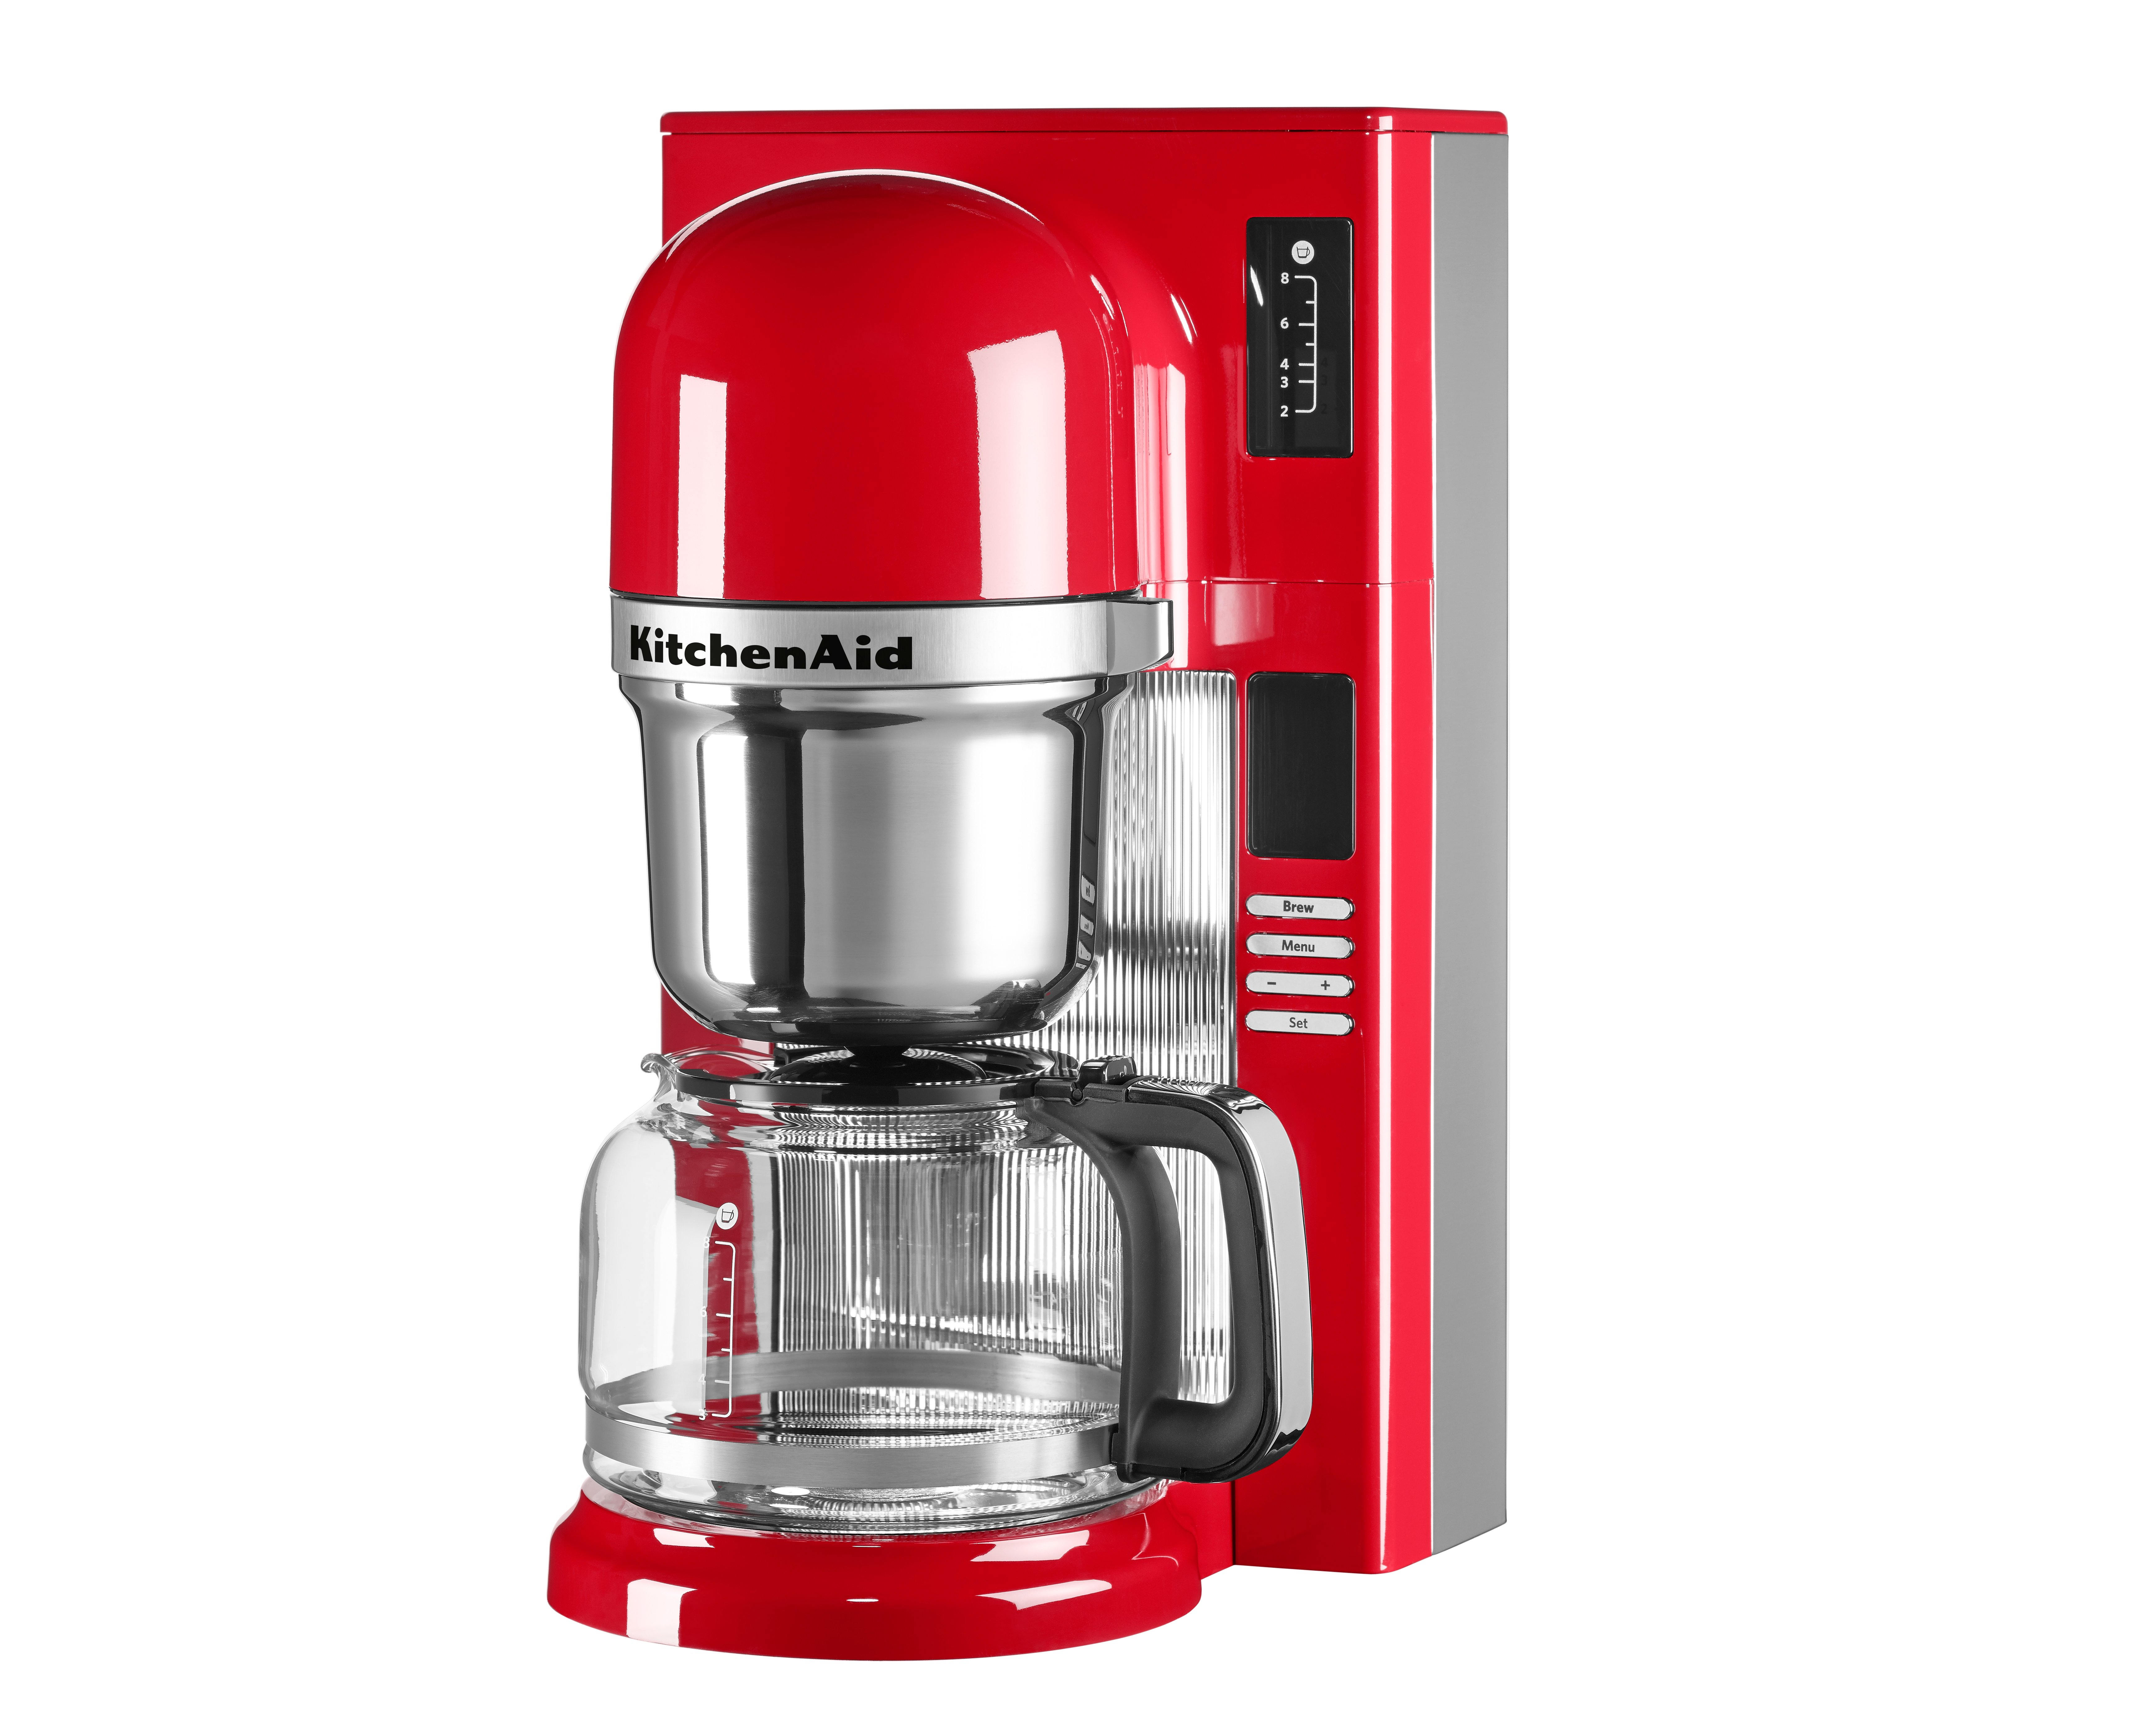 Buy Kitchenaid Pour Over Coffee Brewer Red 802eer